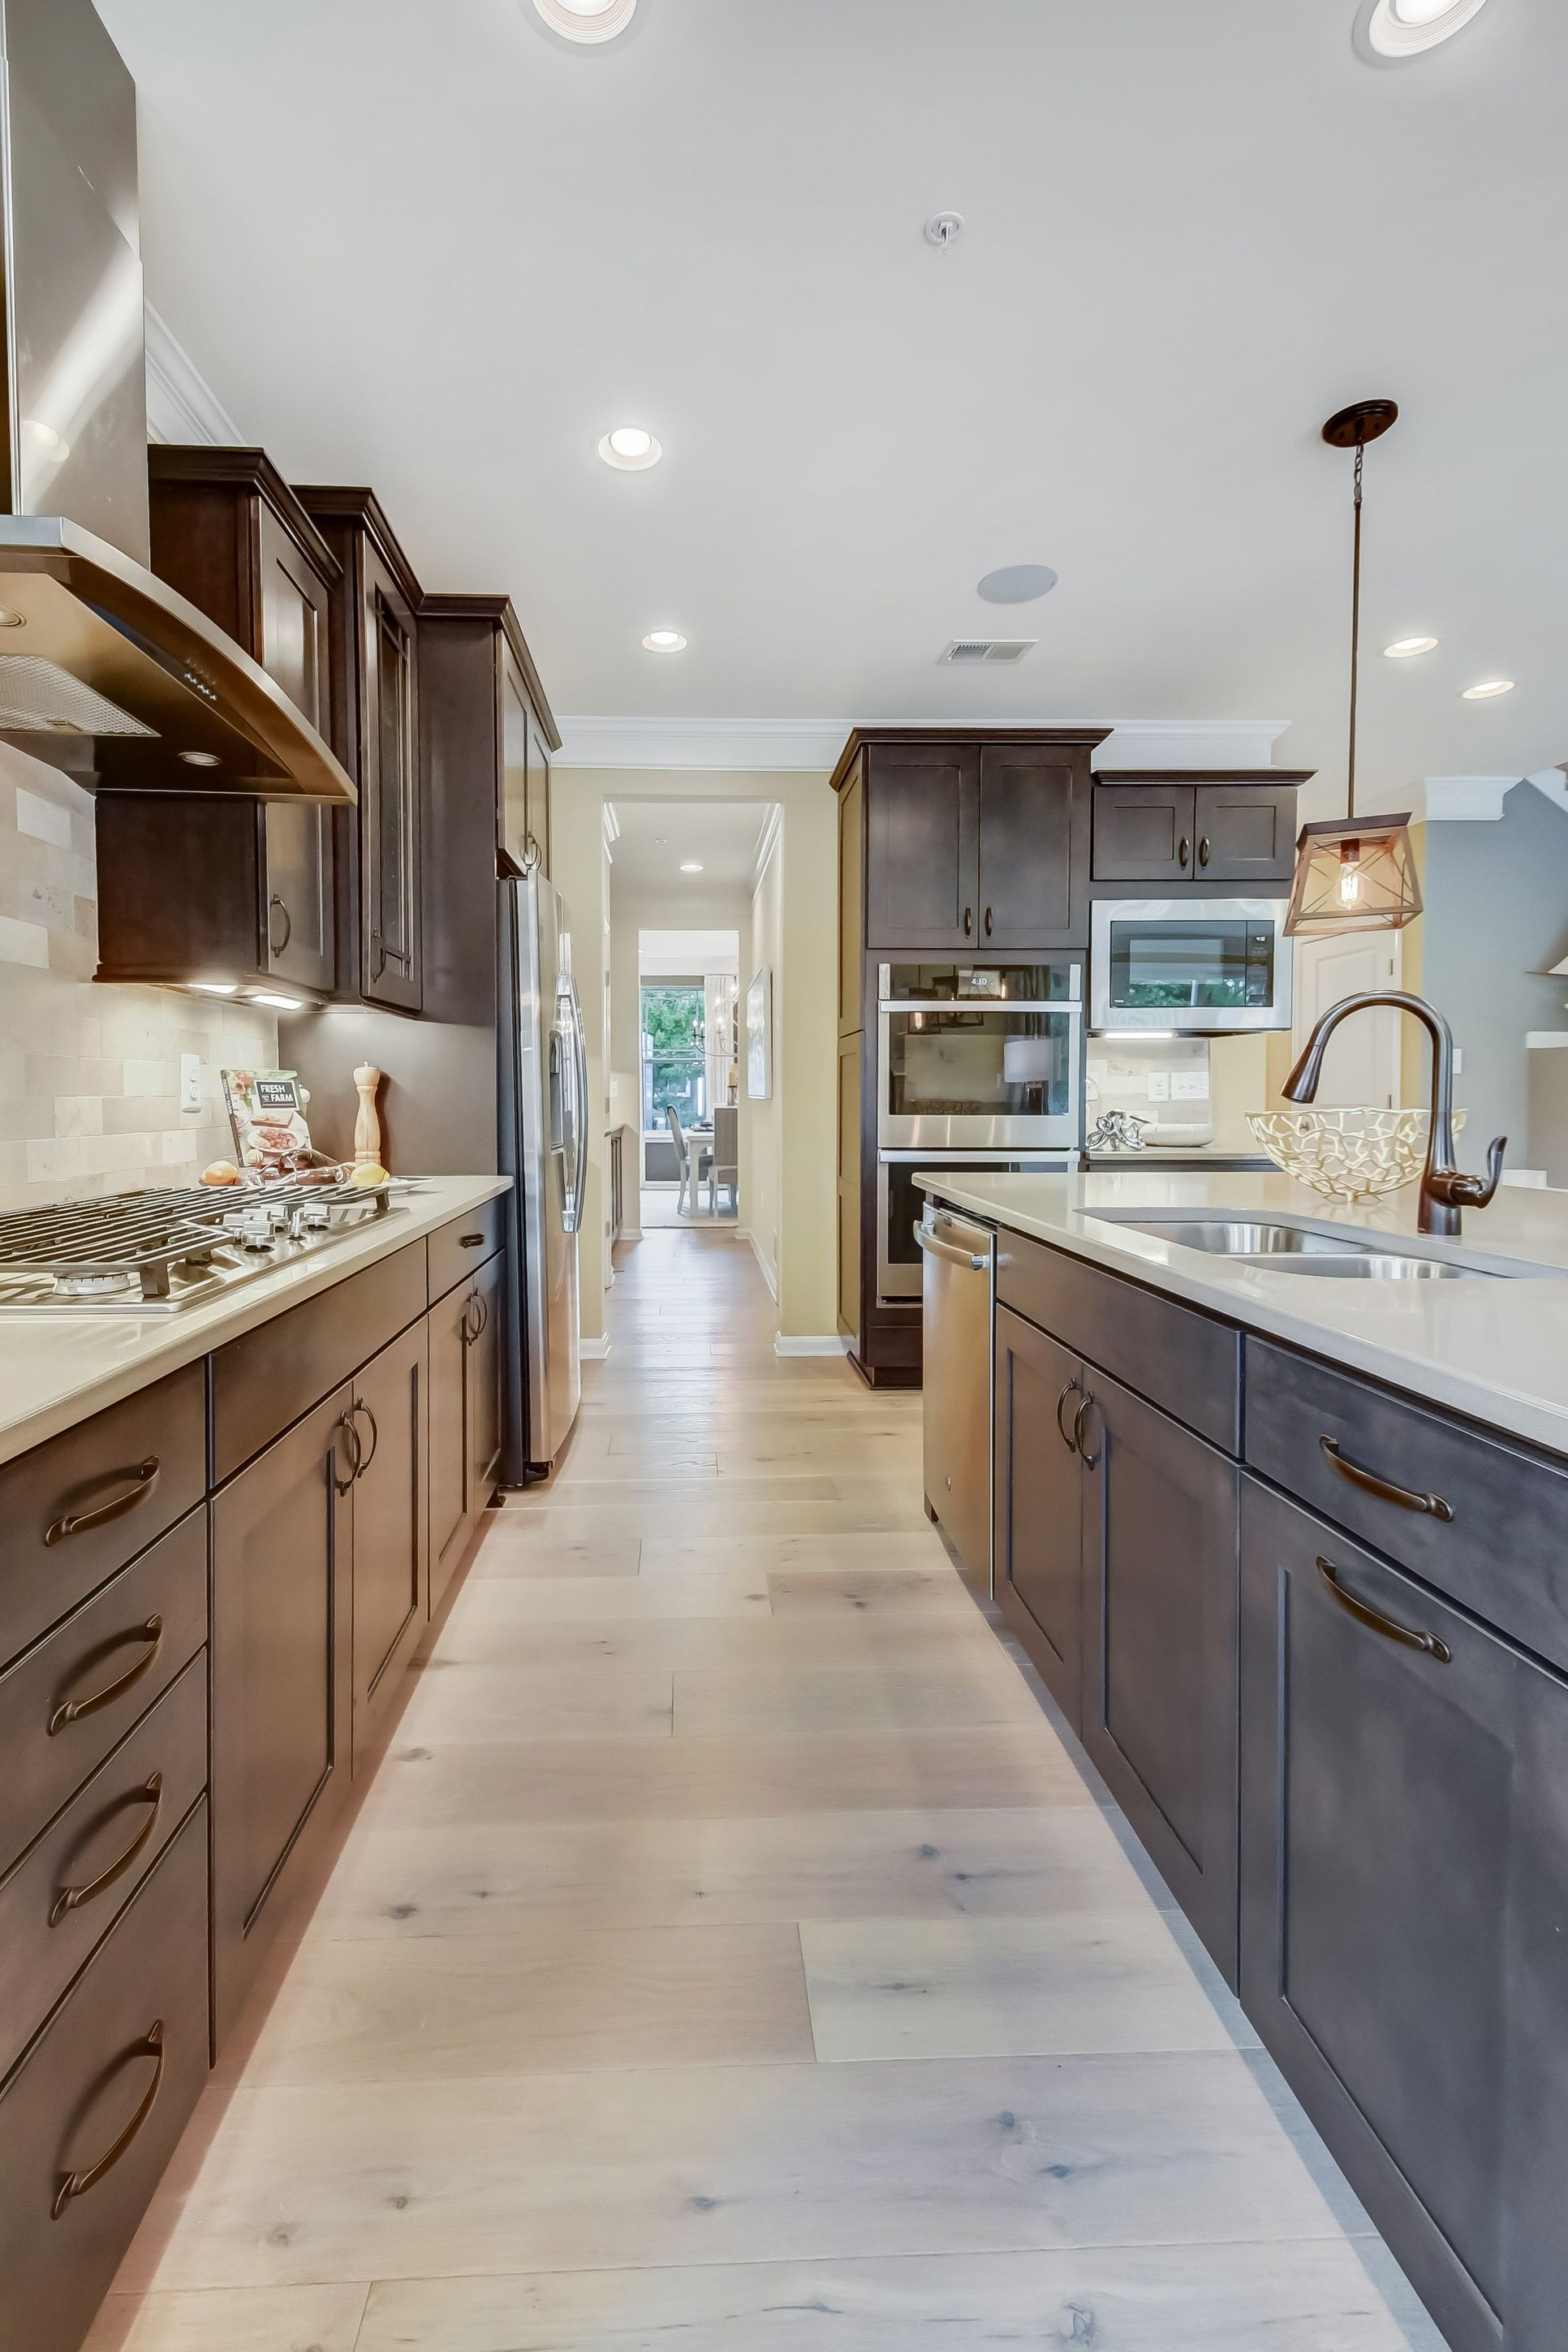 Interior:Ample counter space